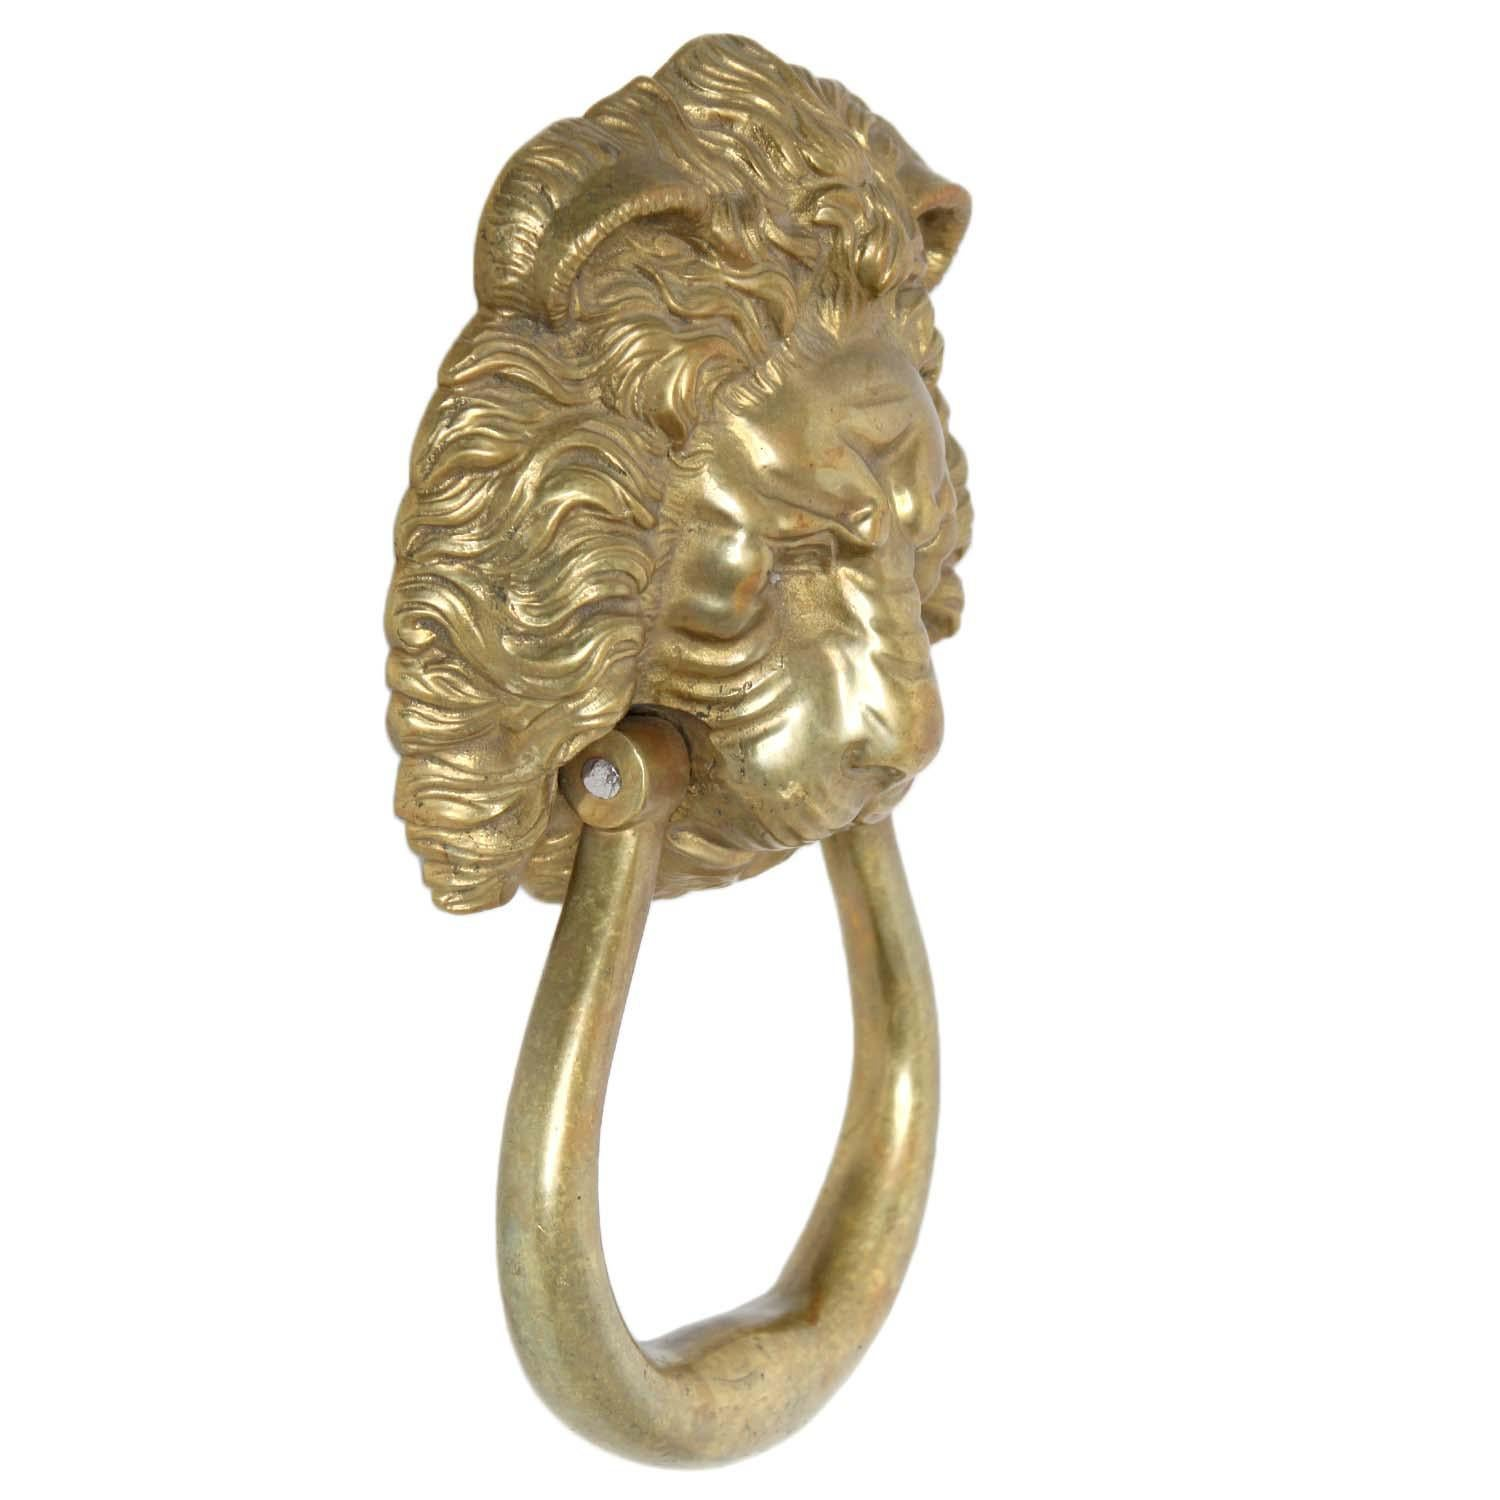 Lion Head Door Knocker - Image 3 of 3